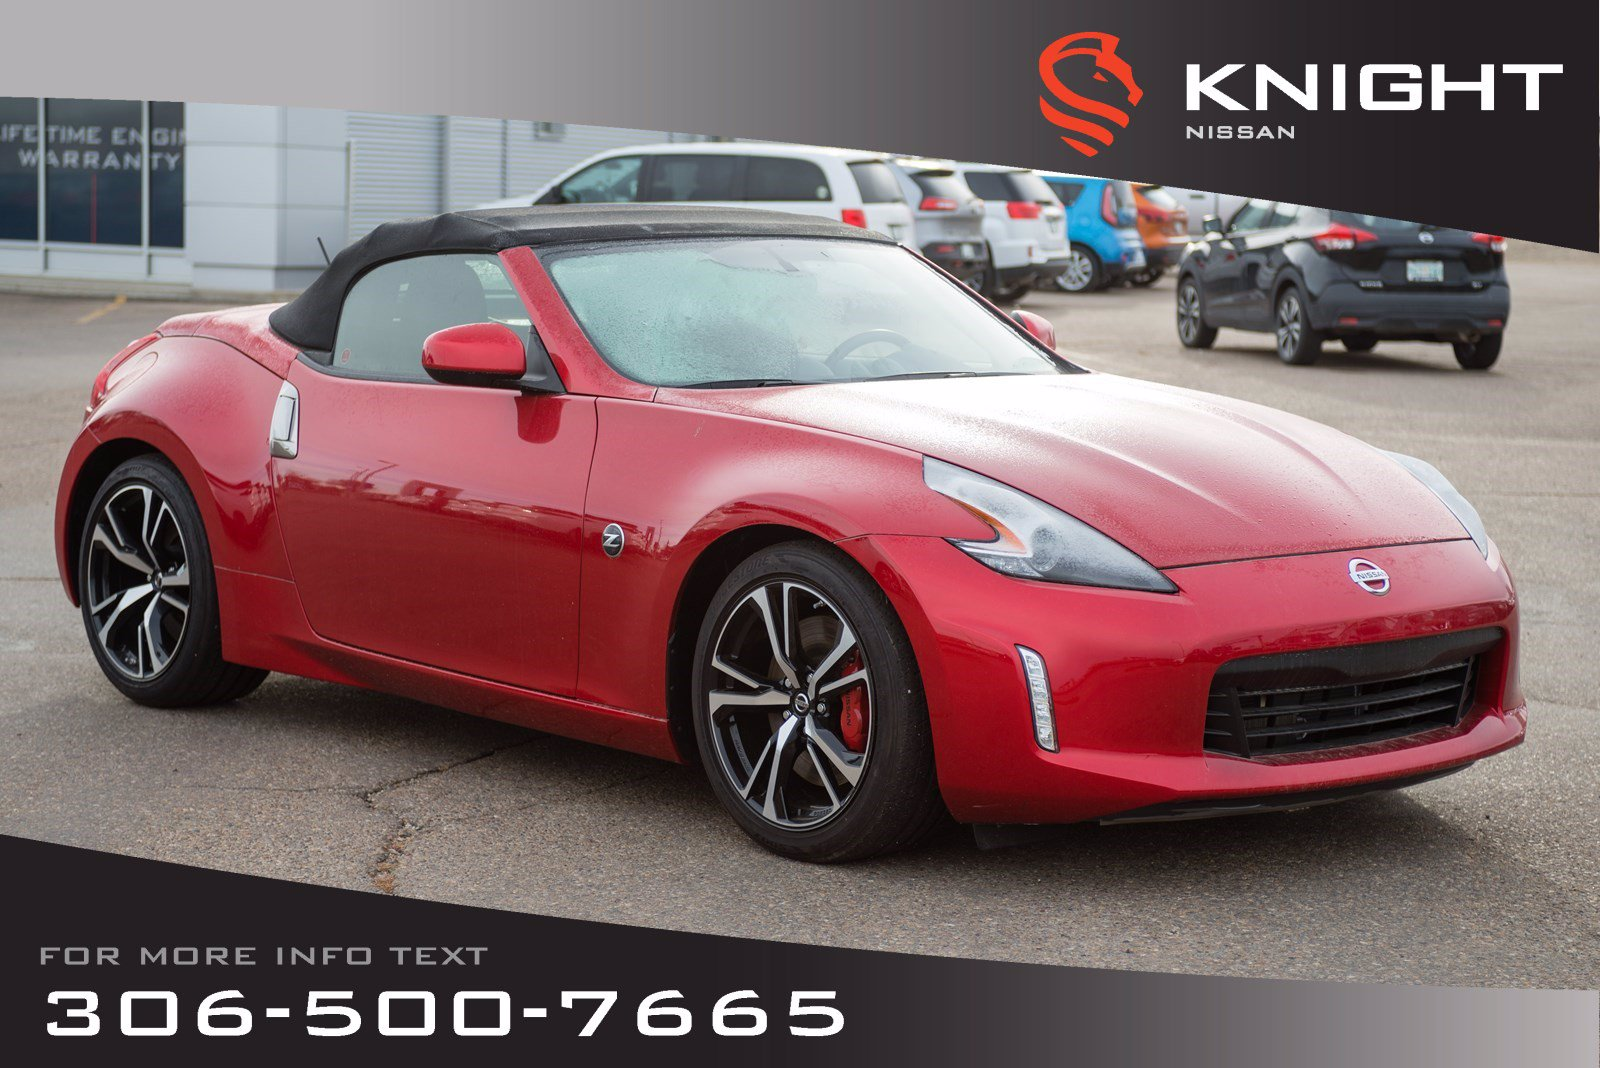 New 2019 Nissan 370Z Roadster | Touring Sport | Leather | Heated & Cooled Seats | CLEAR OUT SPECIAL!